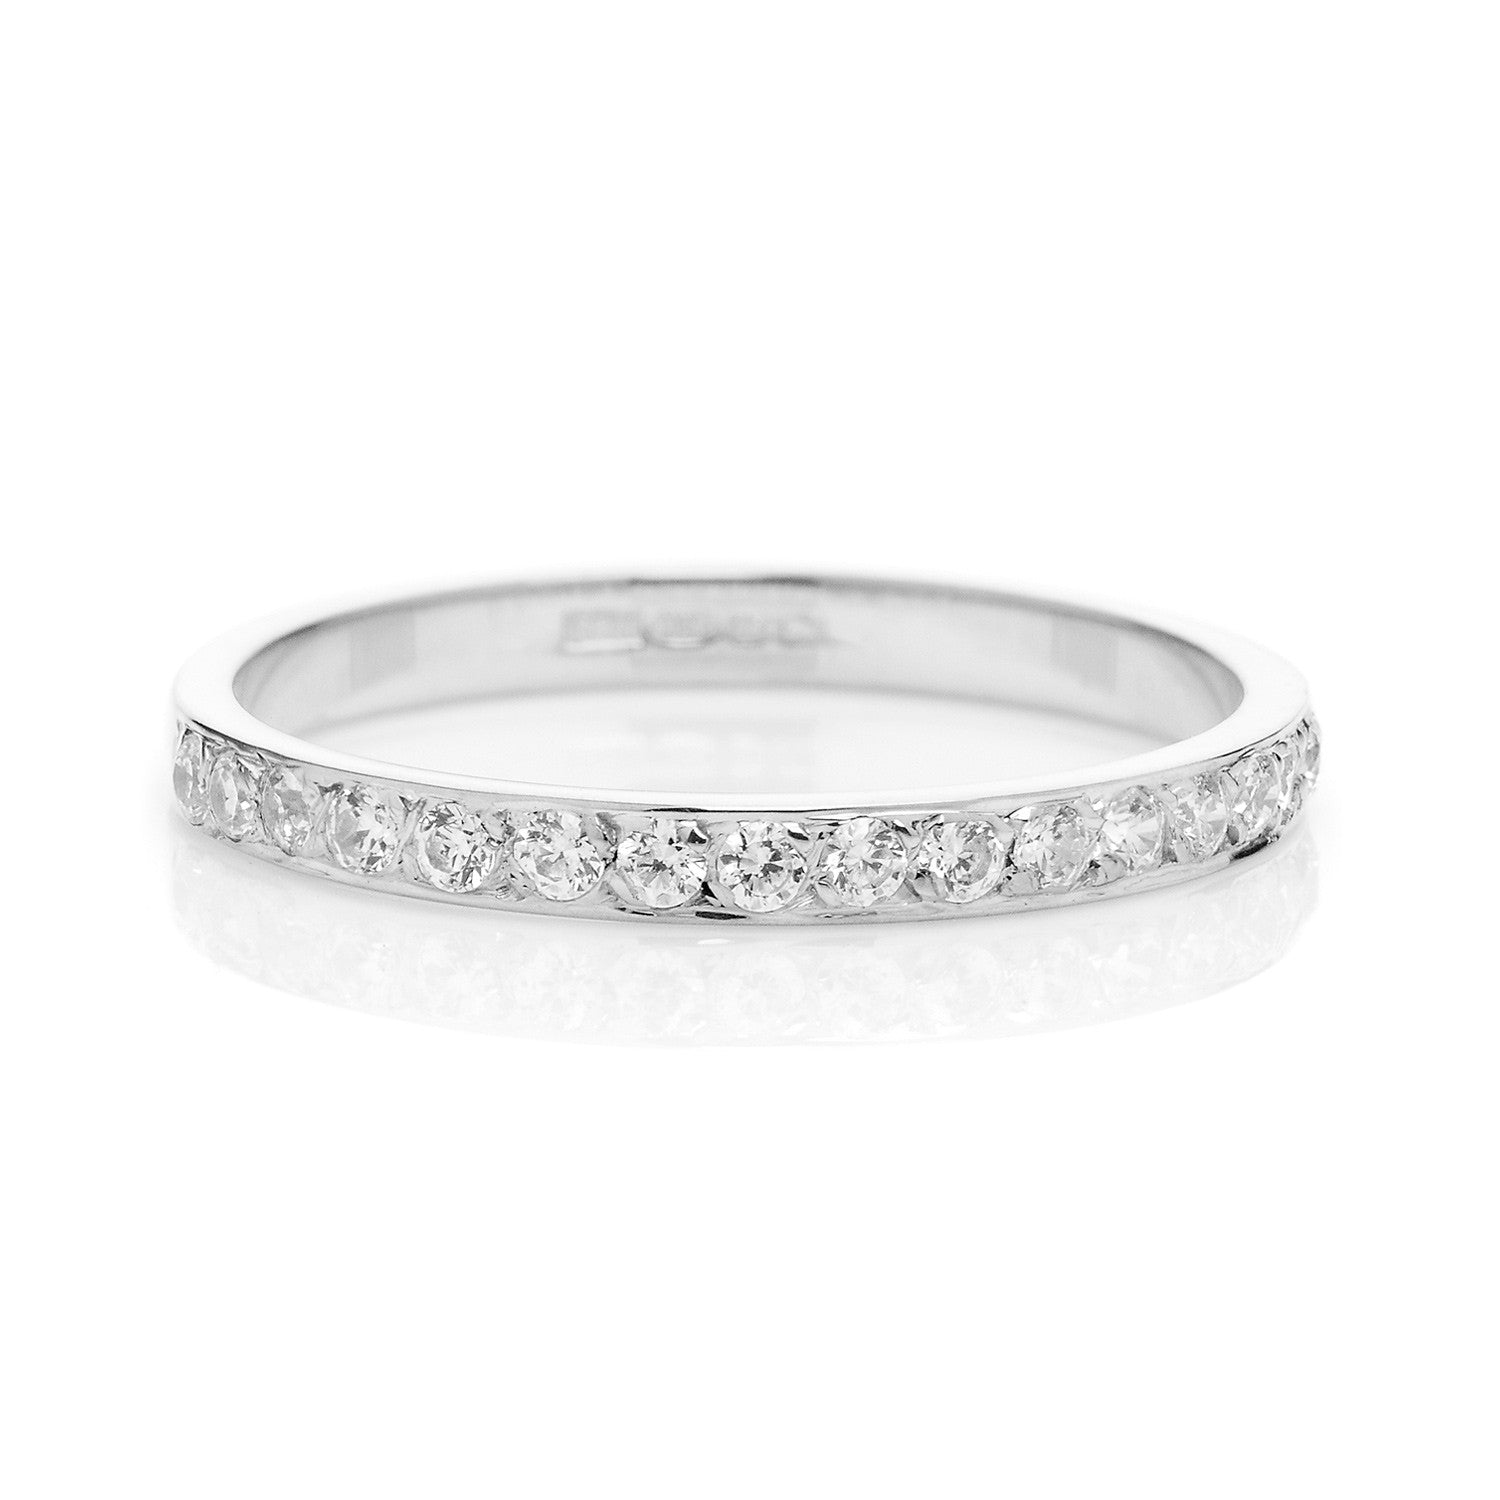 Cherish Full Diamond Ethical Platinum Eternity Wedding Ring - Arabel Lebrusan